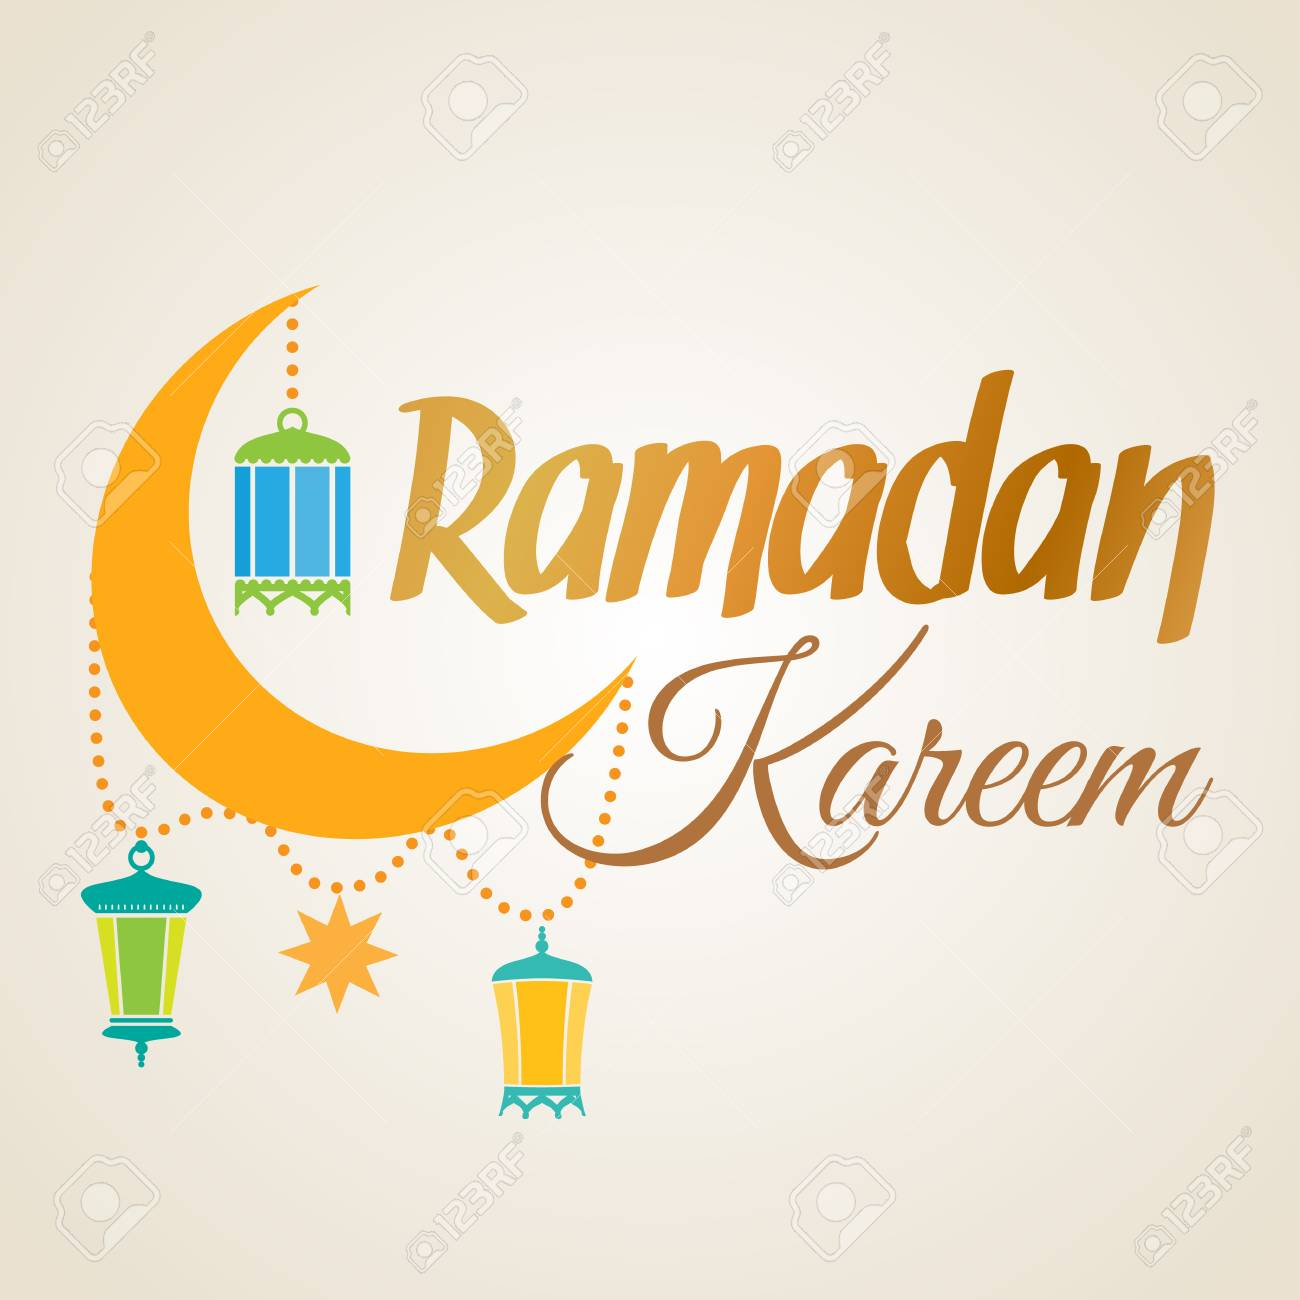 Ramadan Kareem Greeting Card Islamic Crescent Moon And Lantern